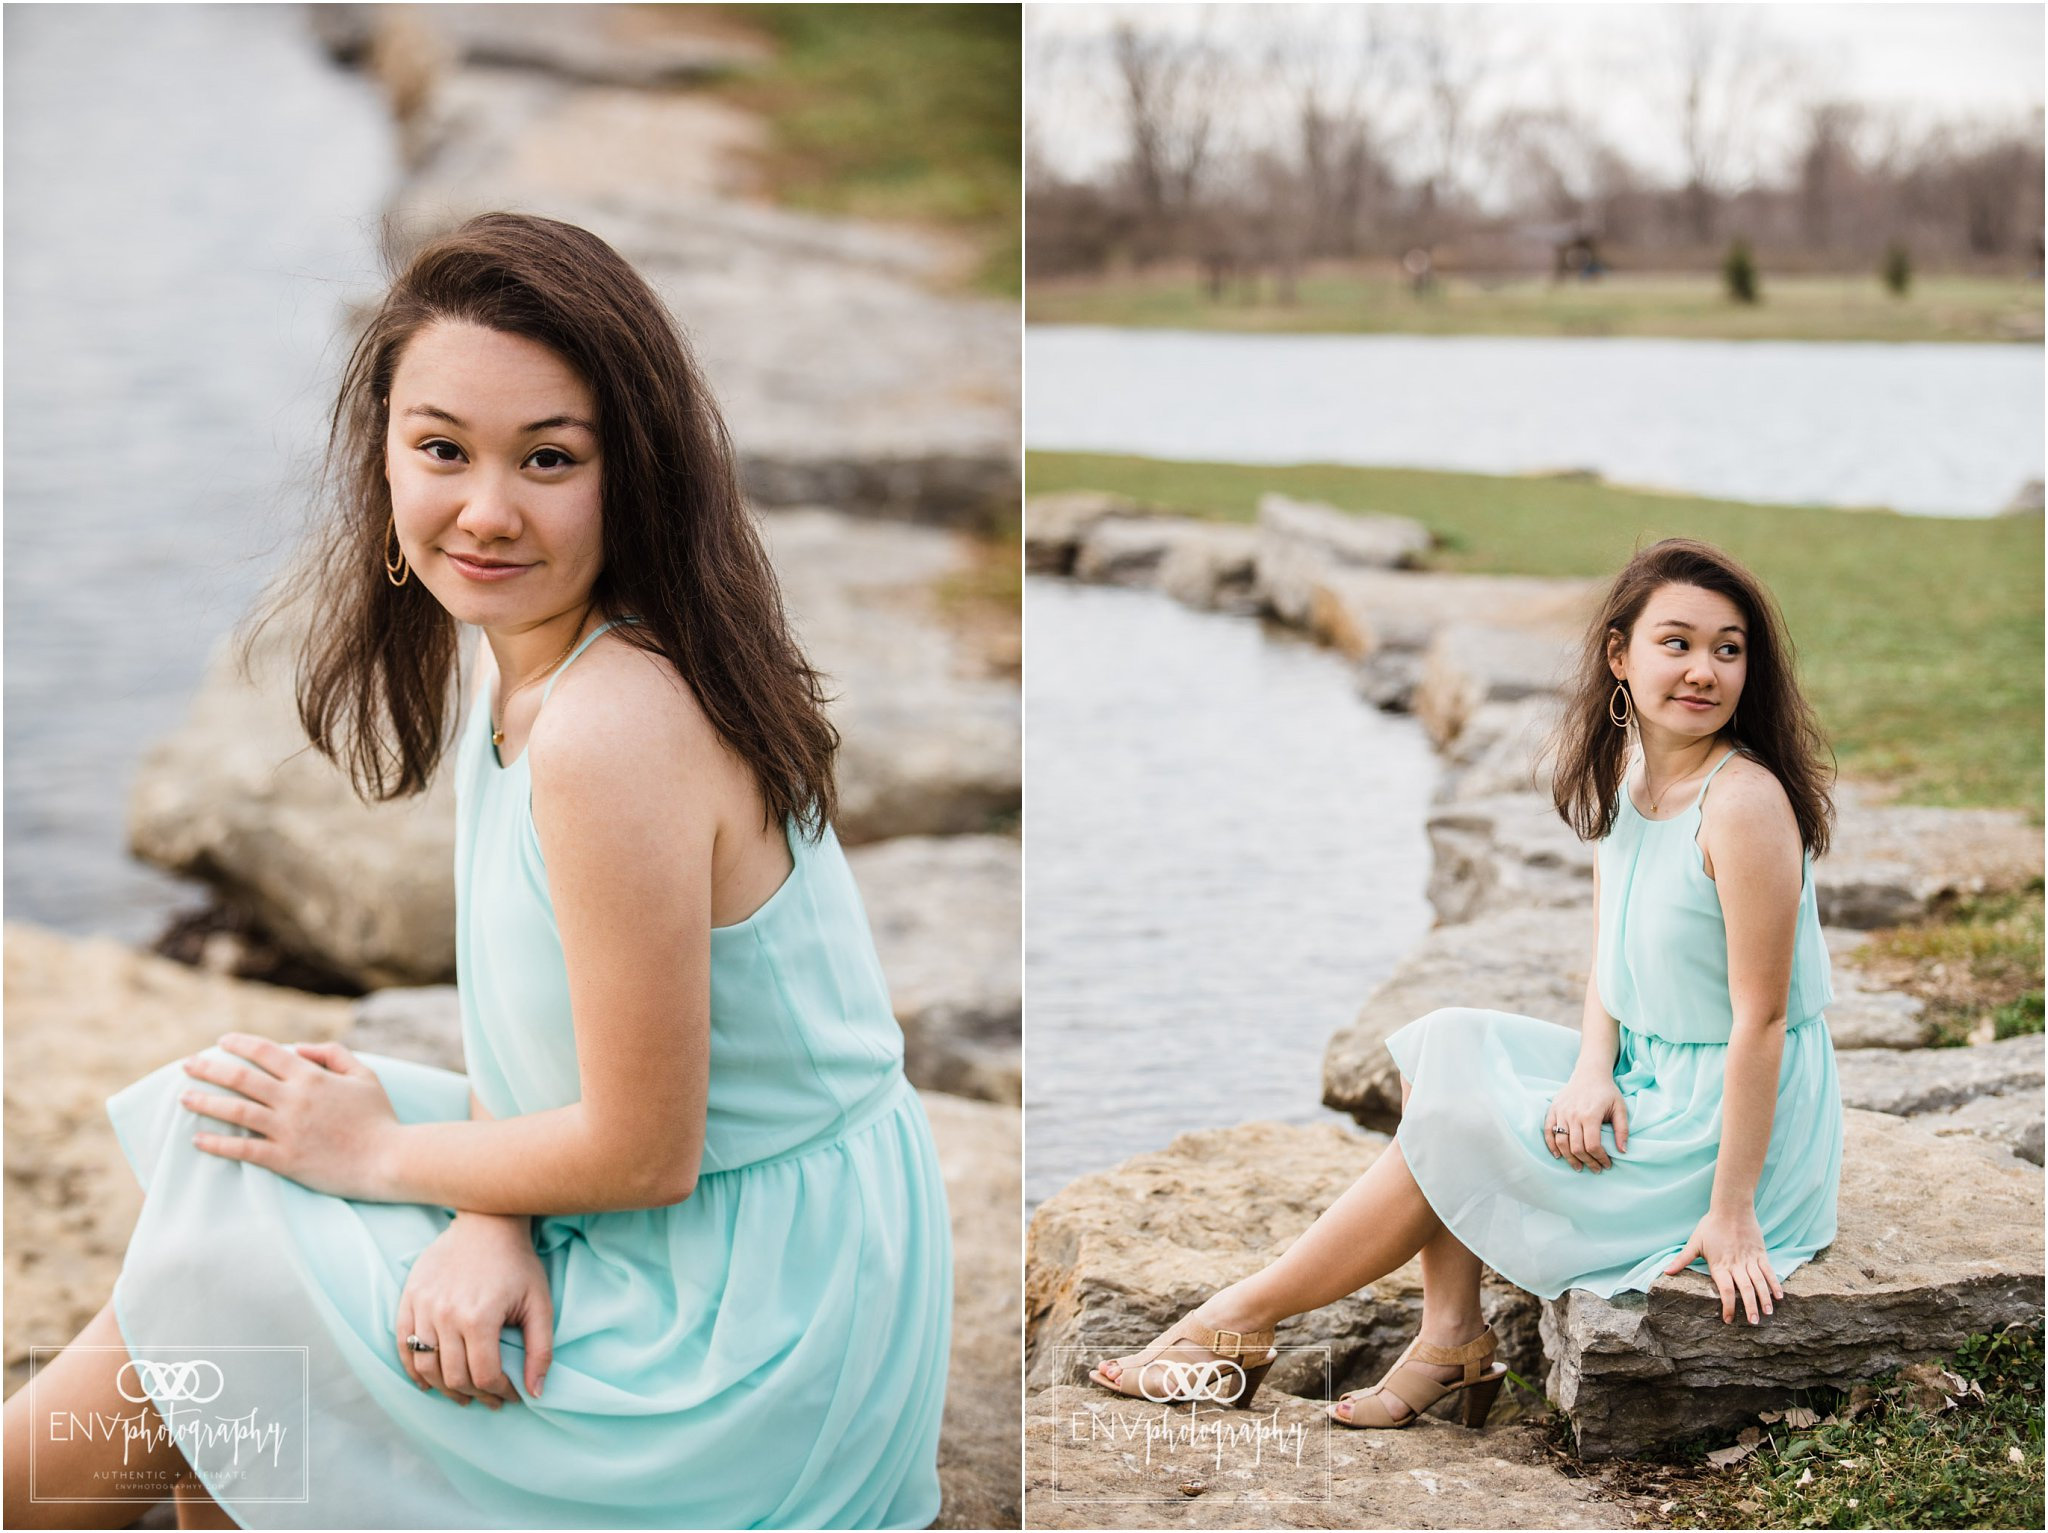 Centerburg Columbus Ohio Senior Portrait Photographer (17).jpg